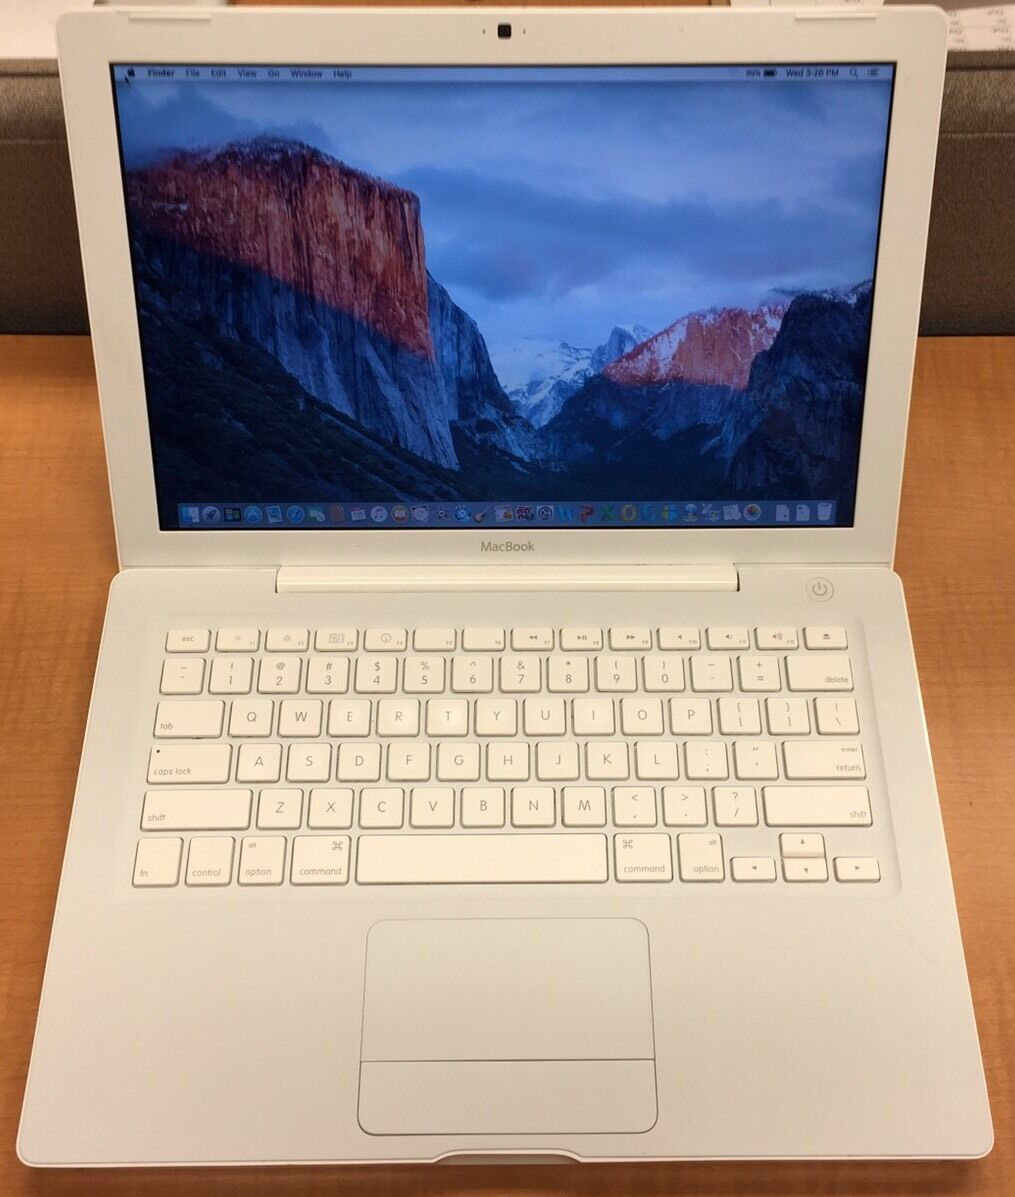 Macbook - Apple MacBook 5,2 Laptop OS X El Capitan 2.13GHz 4GB RAM 250GB HDD - MC240LL/A